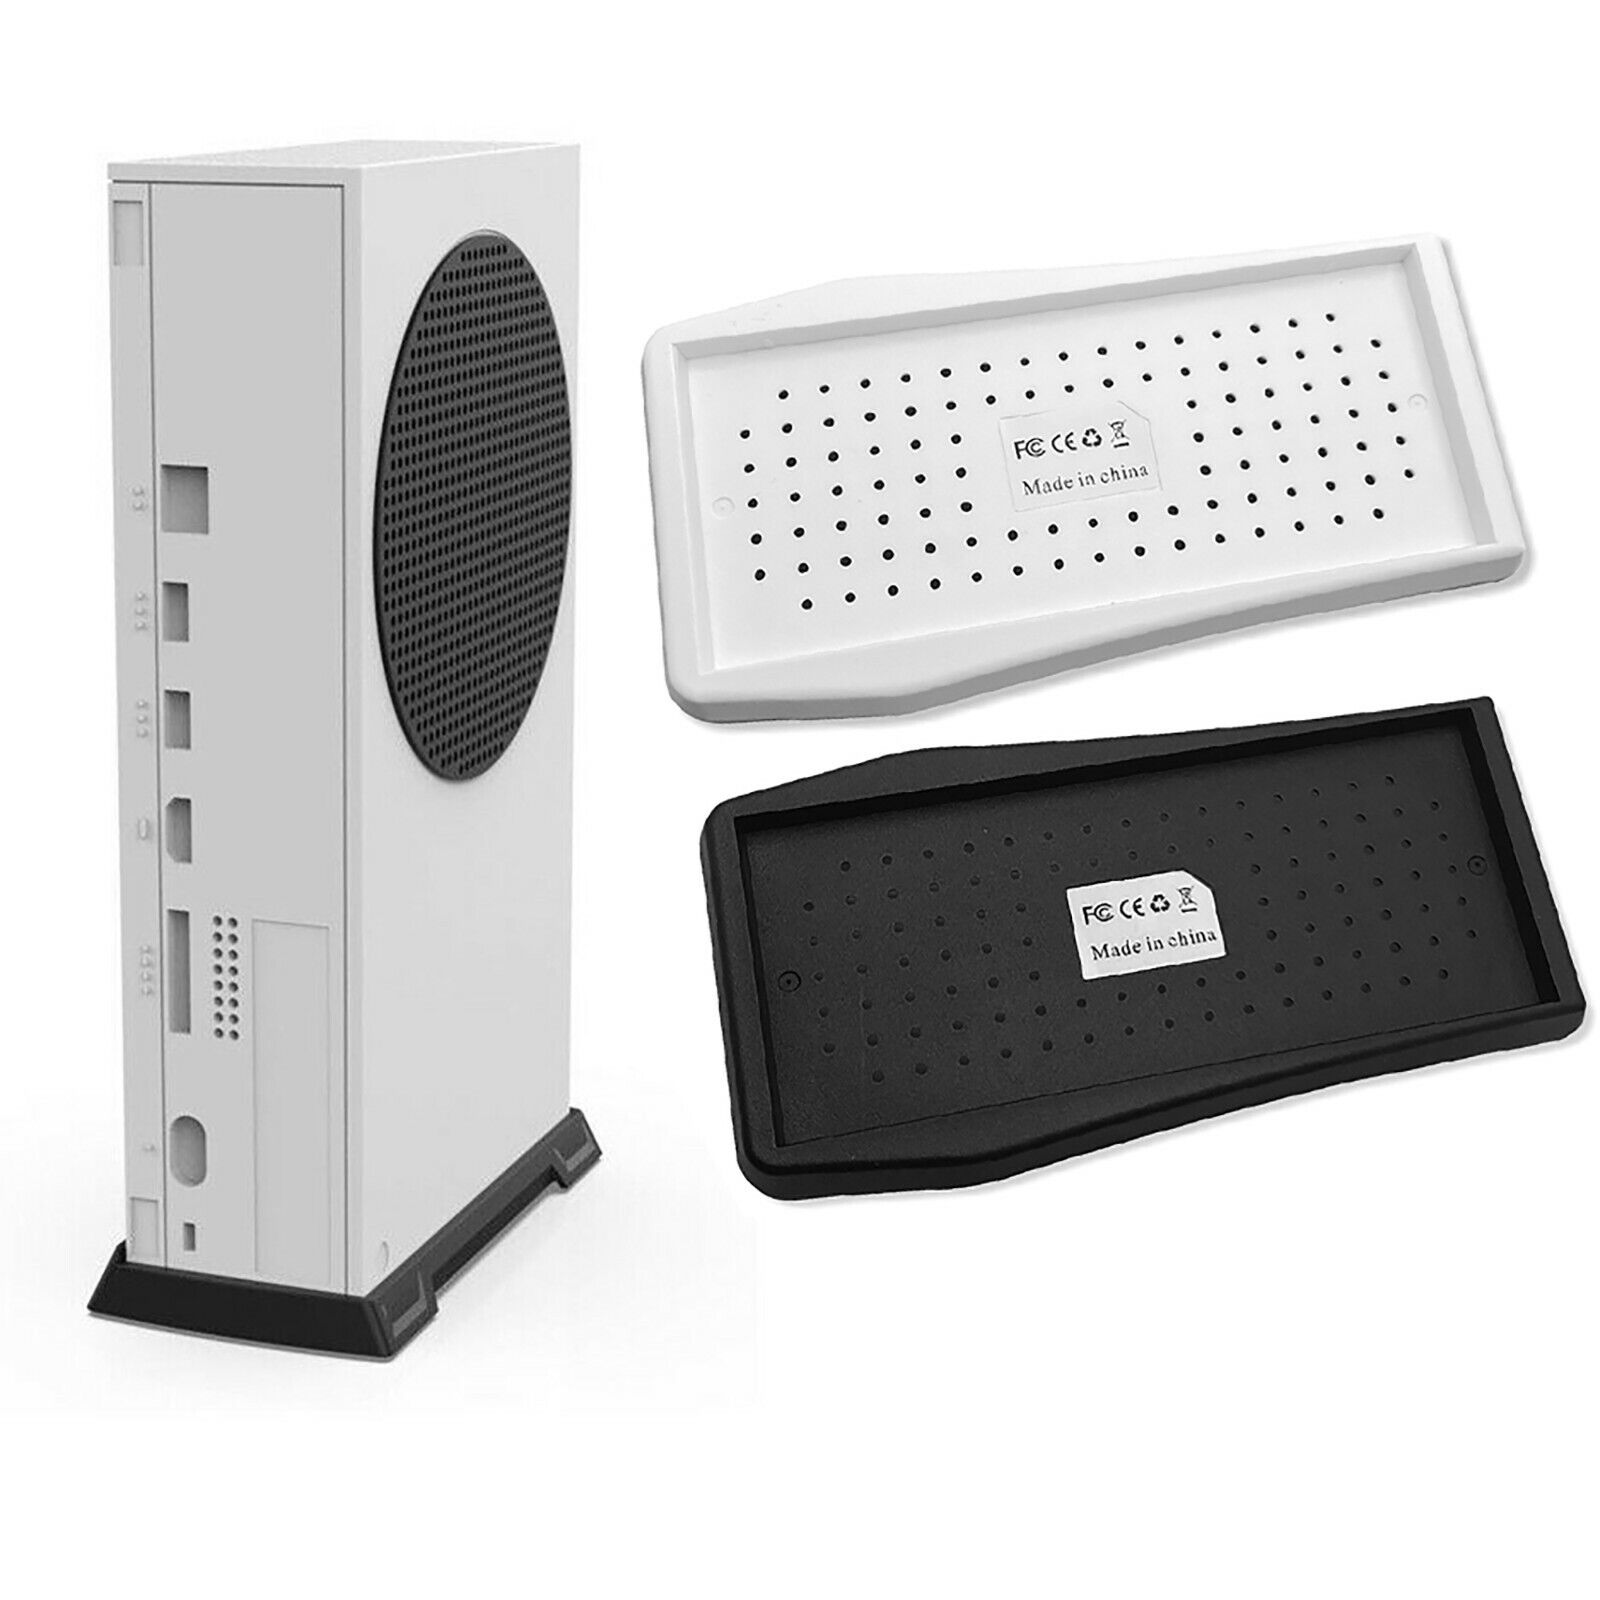 Vertical Stand with Built-in Cooling Vents for Xbox Series S Console Accessories